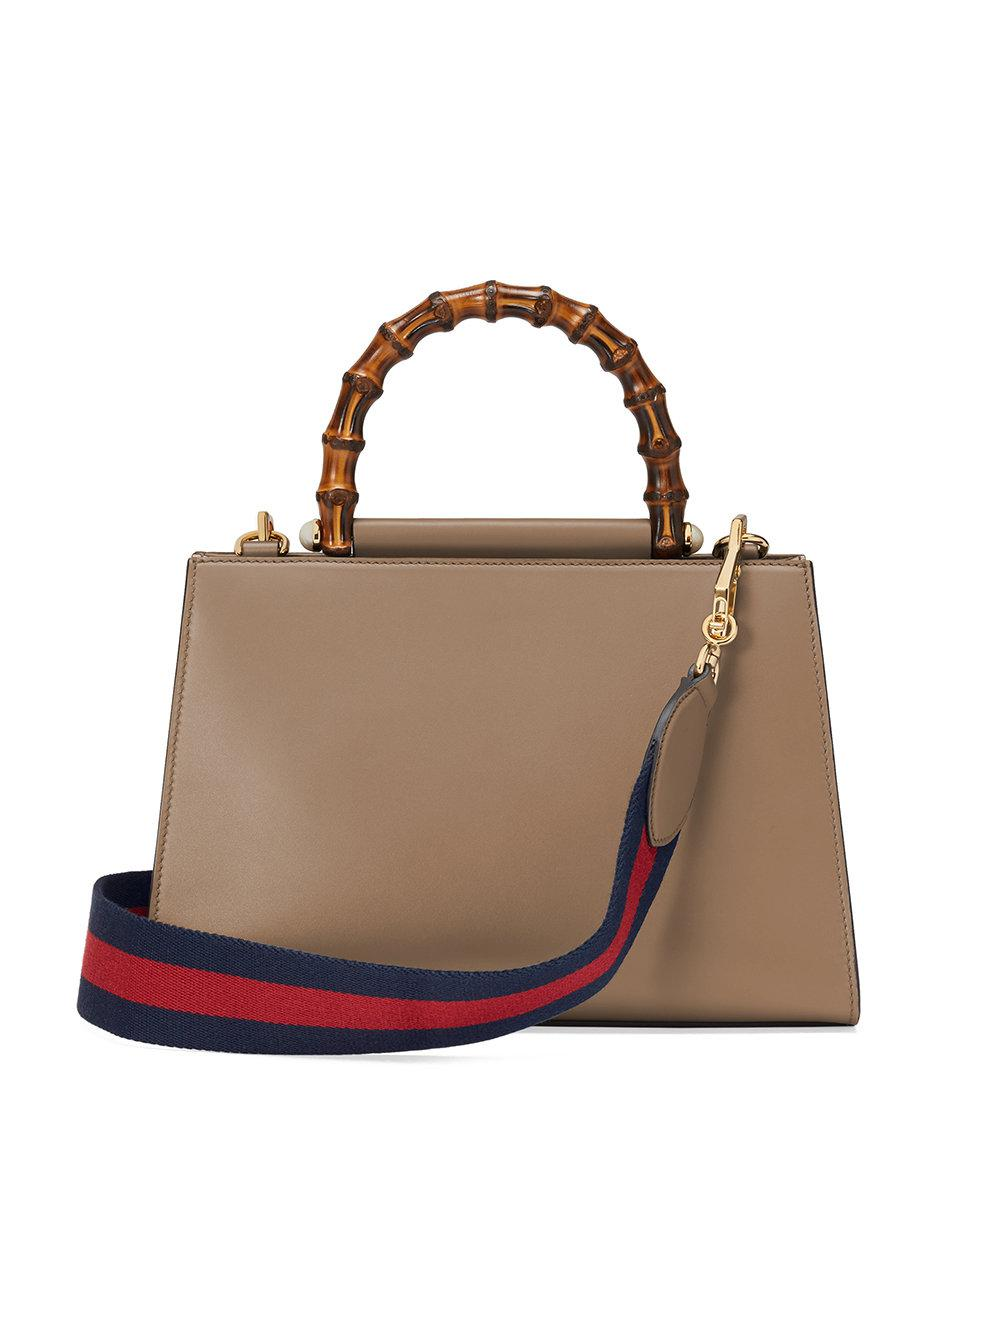 1f434c0f946 Lyst - Gucci Nymphaea Small Top Handle Bag in Brown